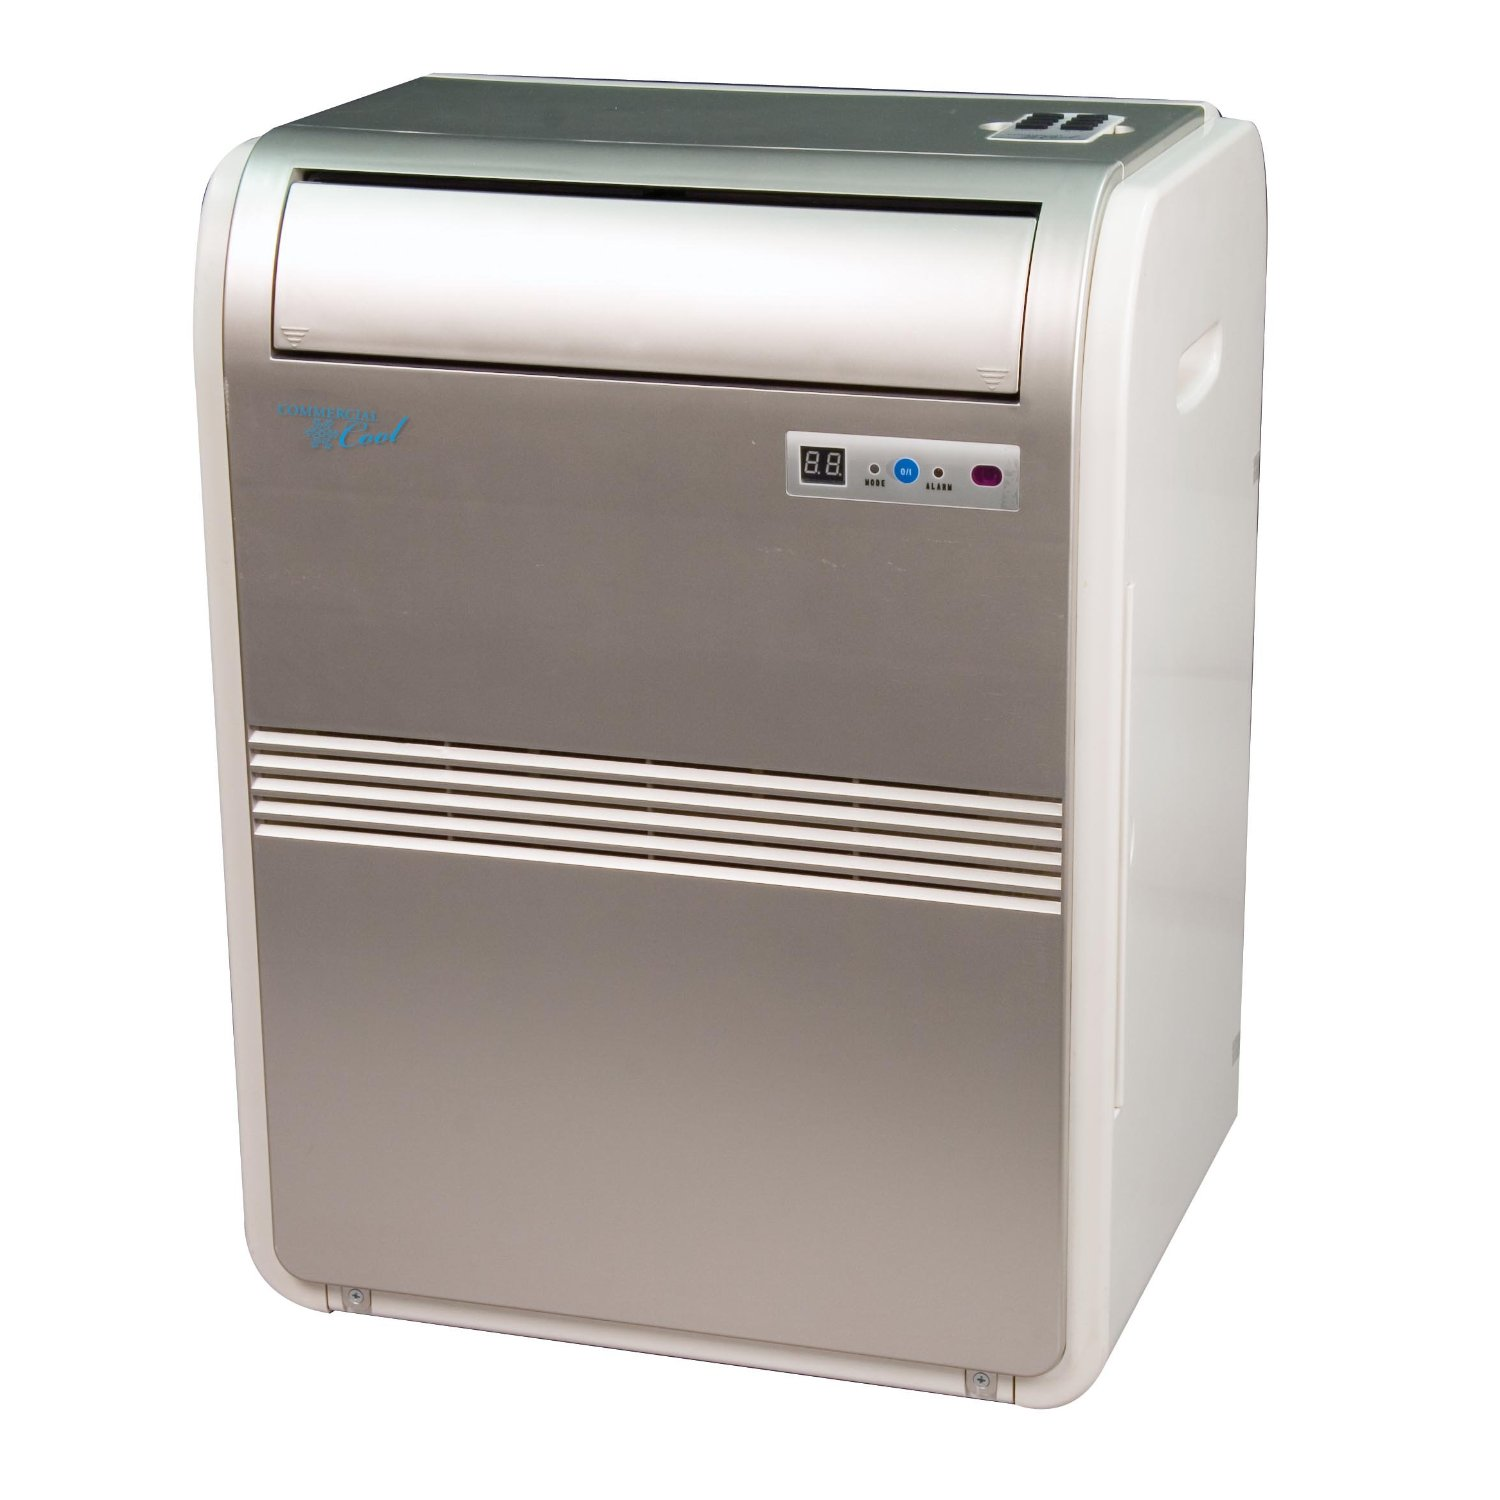 Haier Portable Air Conditioner 8000 Btus Cprb08xcj Avi